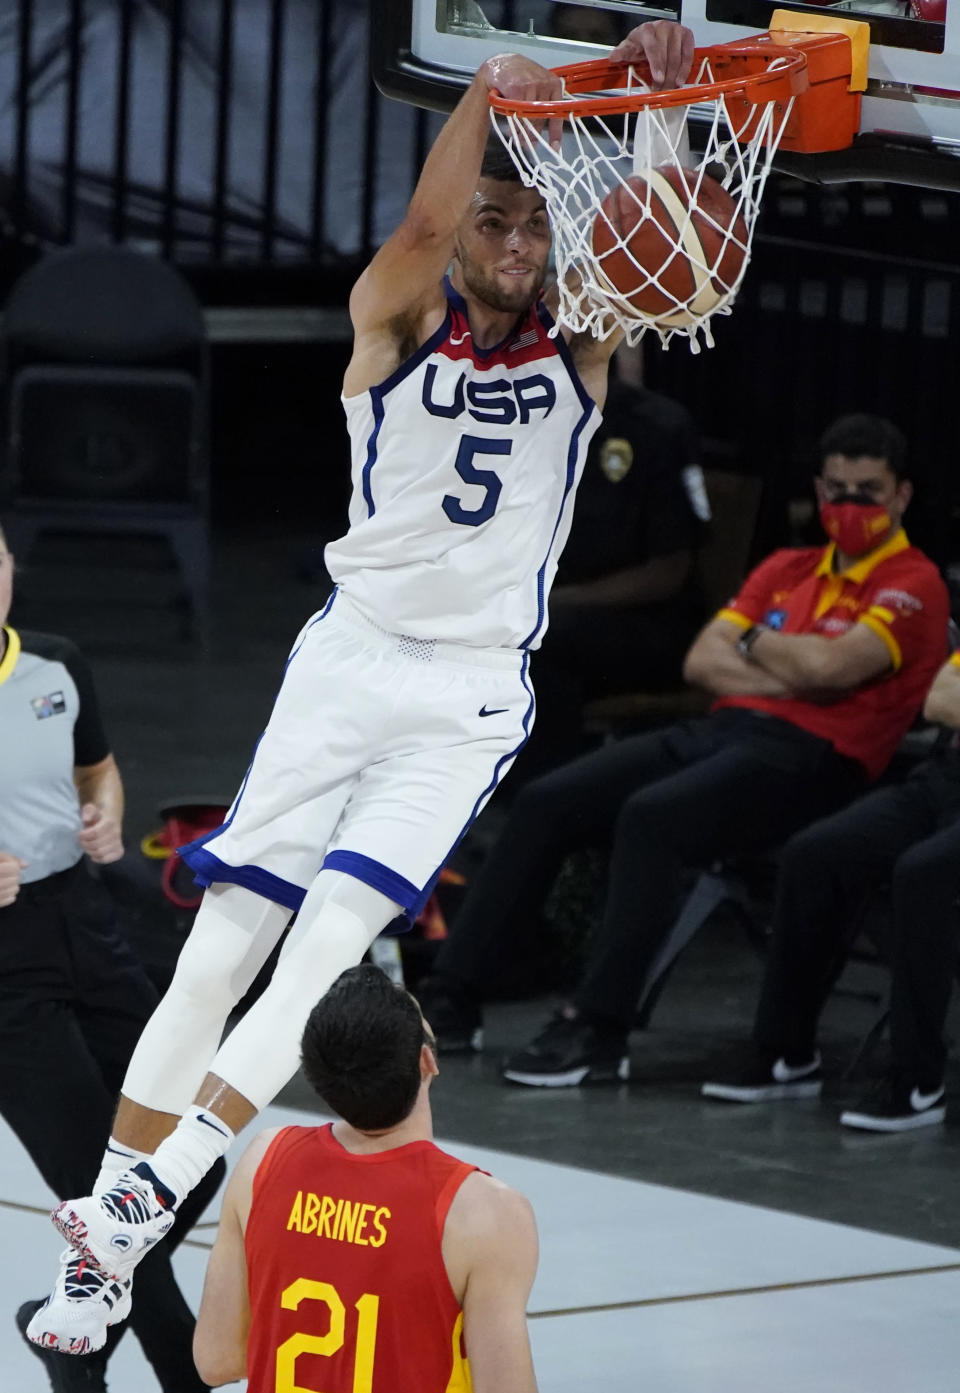 United States' Zach Lavine (5) dunks against Spain's Alex Abrines (21) during the second half of an exhibition basketball game in preparation for the Olympics, Sunday, July 18, 2021, in Las Vegas. (AP Photo/John Locher)